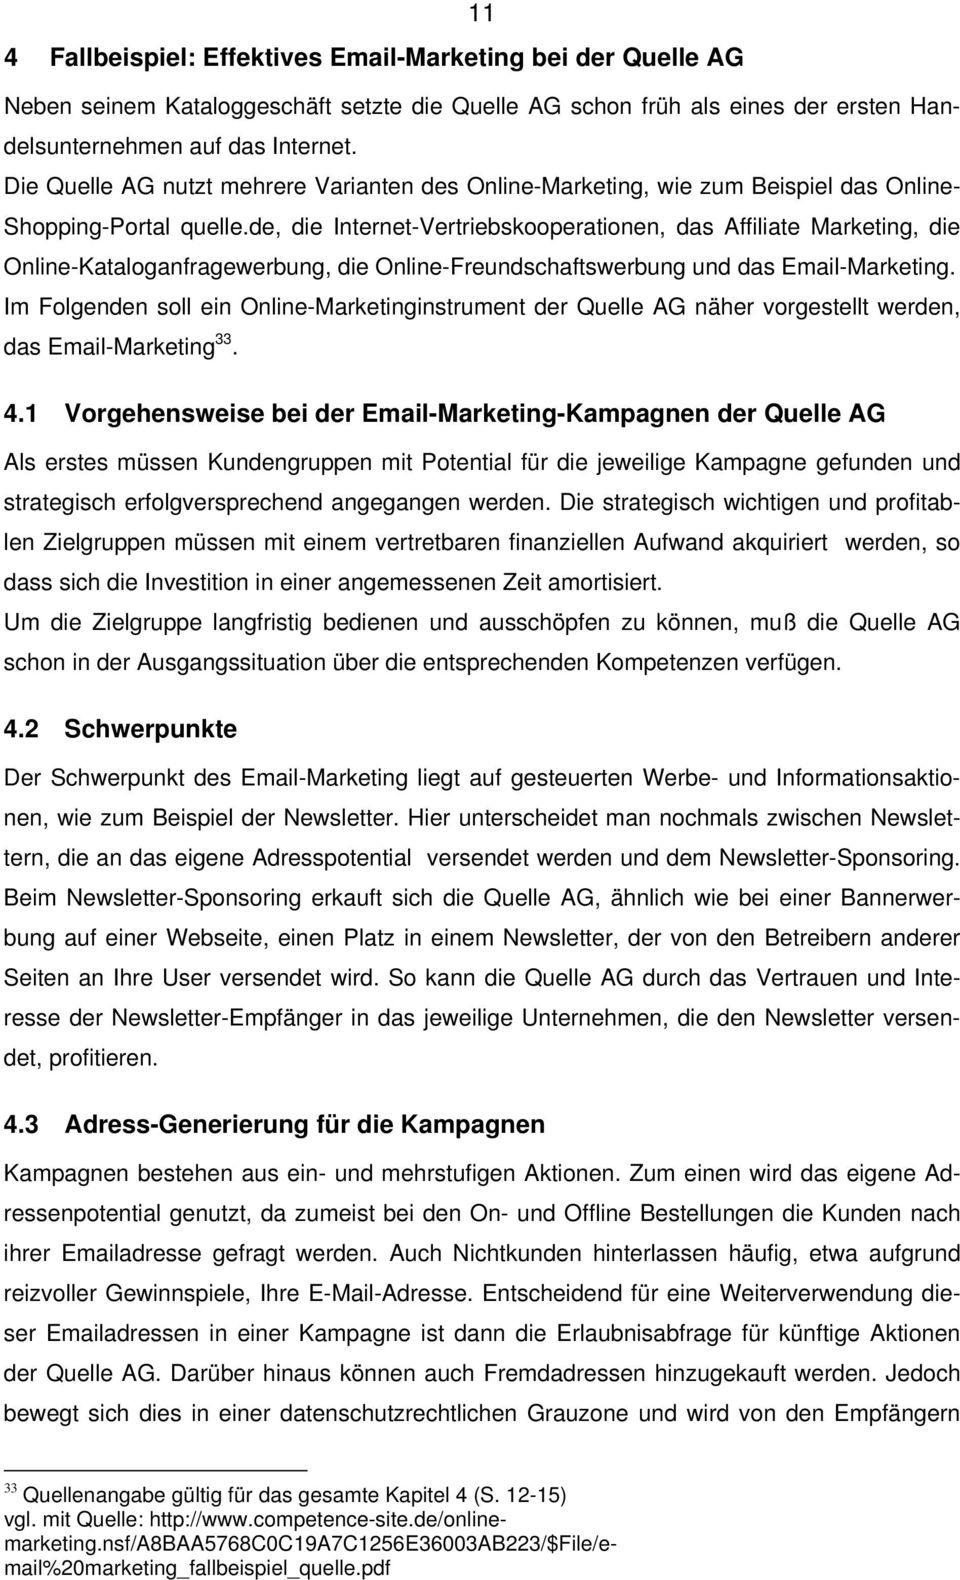 de, die Internet-Vertriebskooperationen, das Affiliate Marketing, die Online-Kataloganfragewerbung, die Online-Freundschaftswerbung und das Email-Marketing.